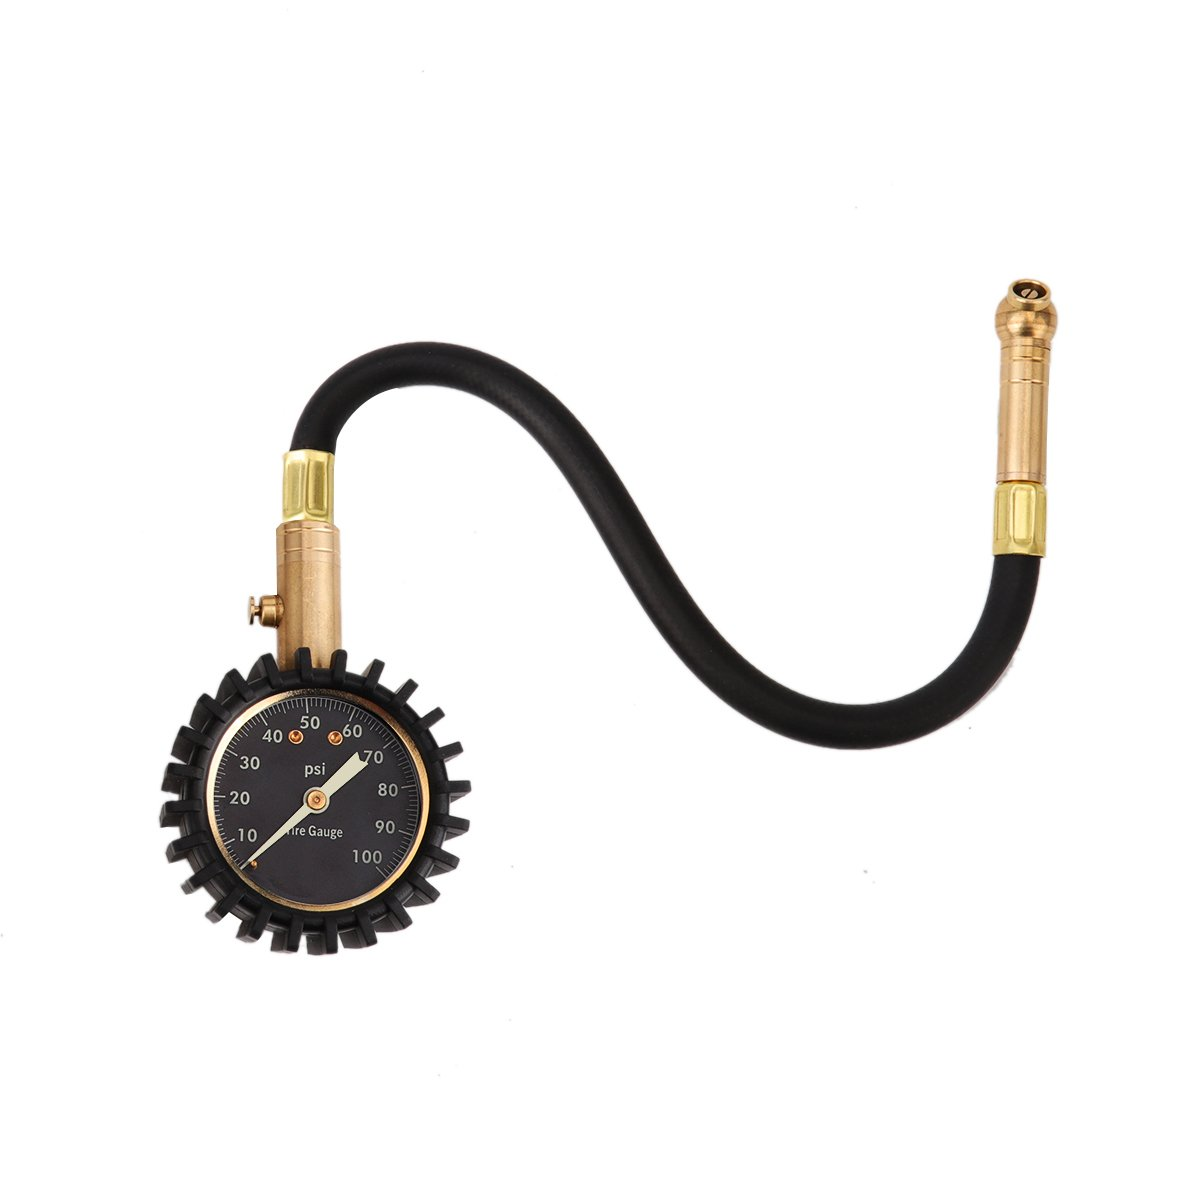 LiangGui Tire Pressure Gauge, Accurate Heavy Duty Dial For Your Car Truck and Motorcycle Black